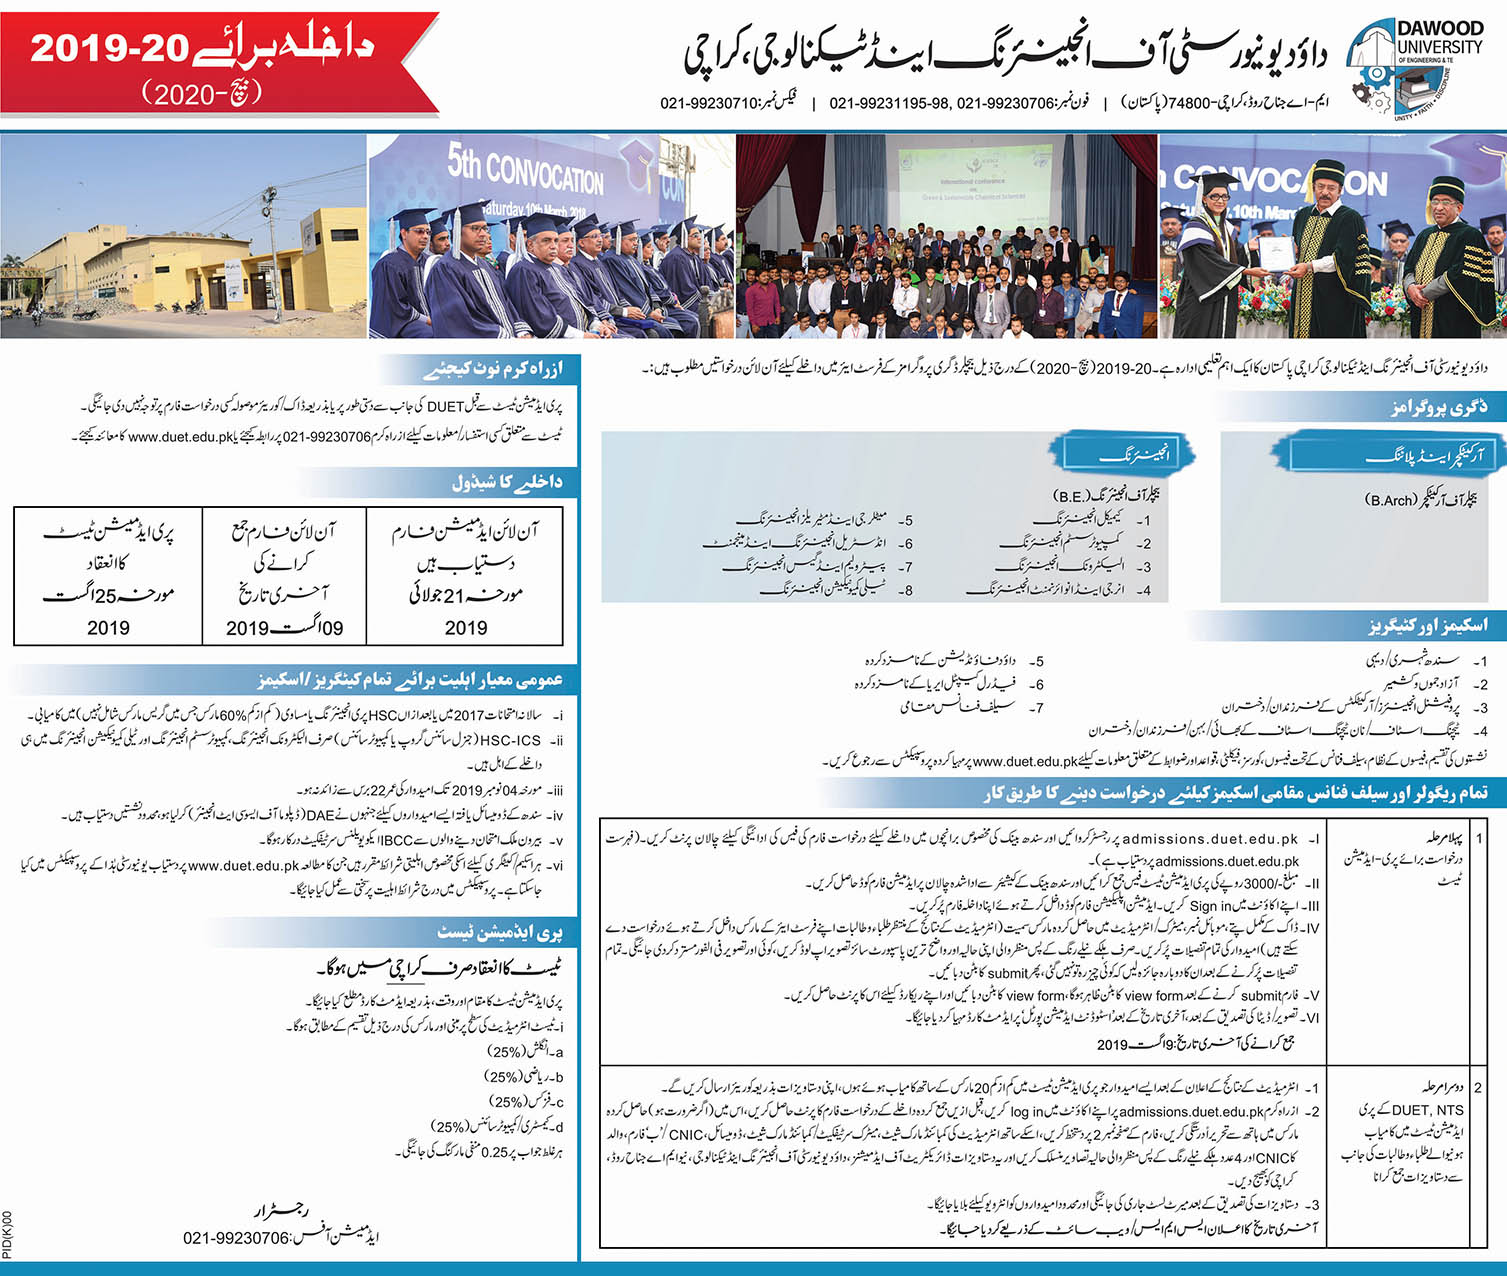 Dawood University of Engineering Technology DUET Admissions NTS Test Result